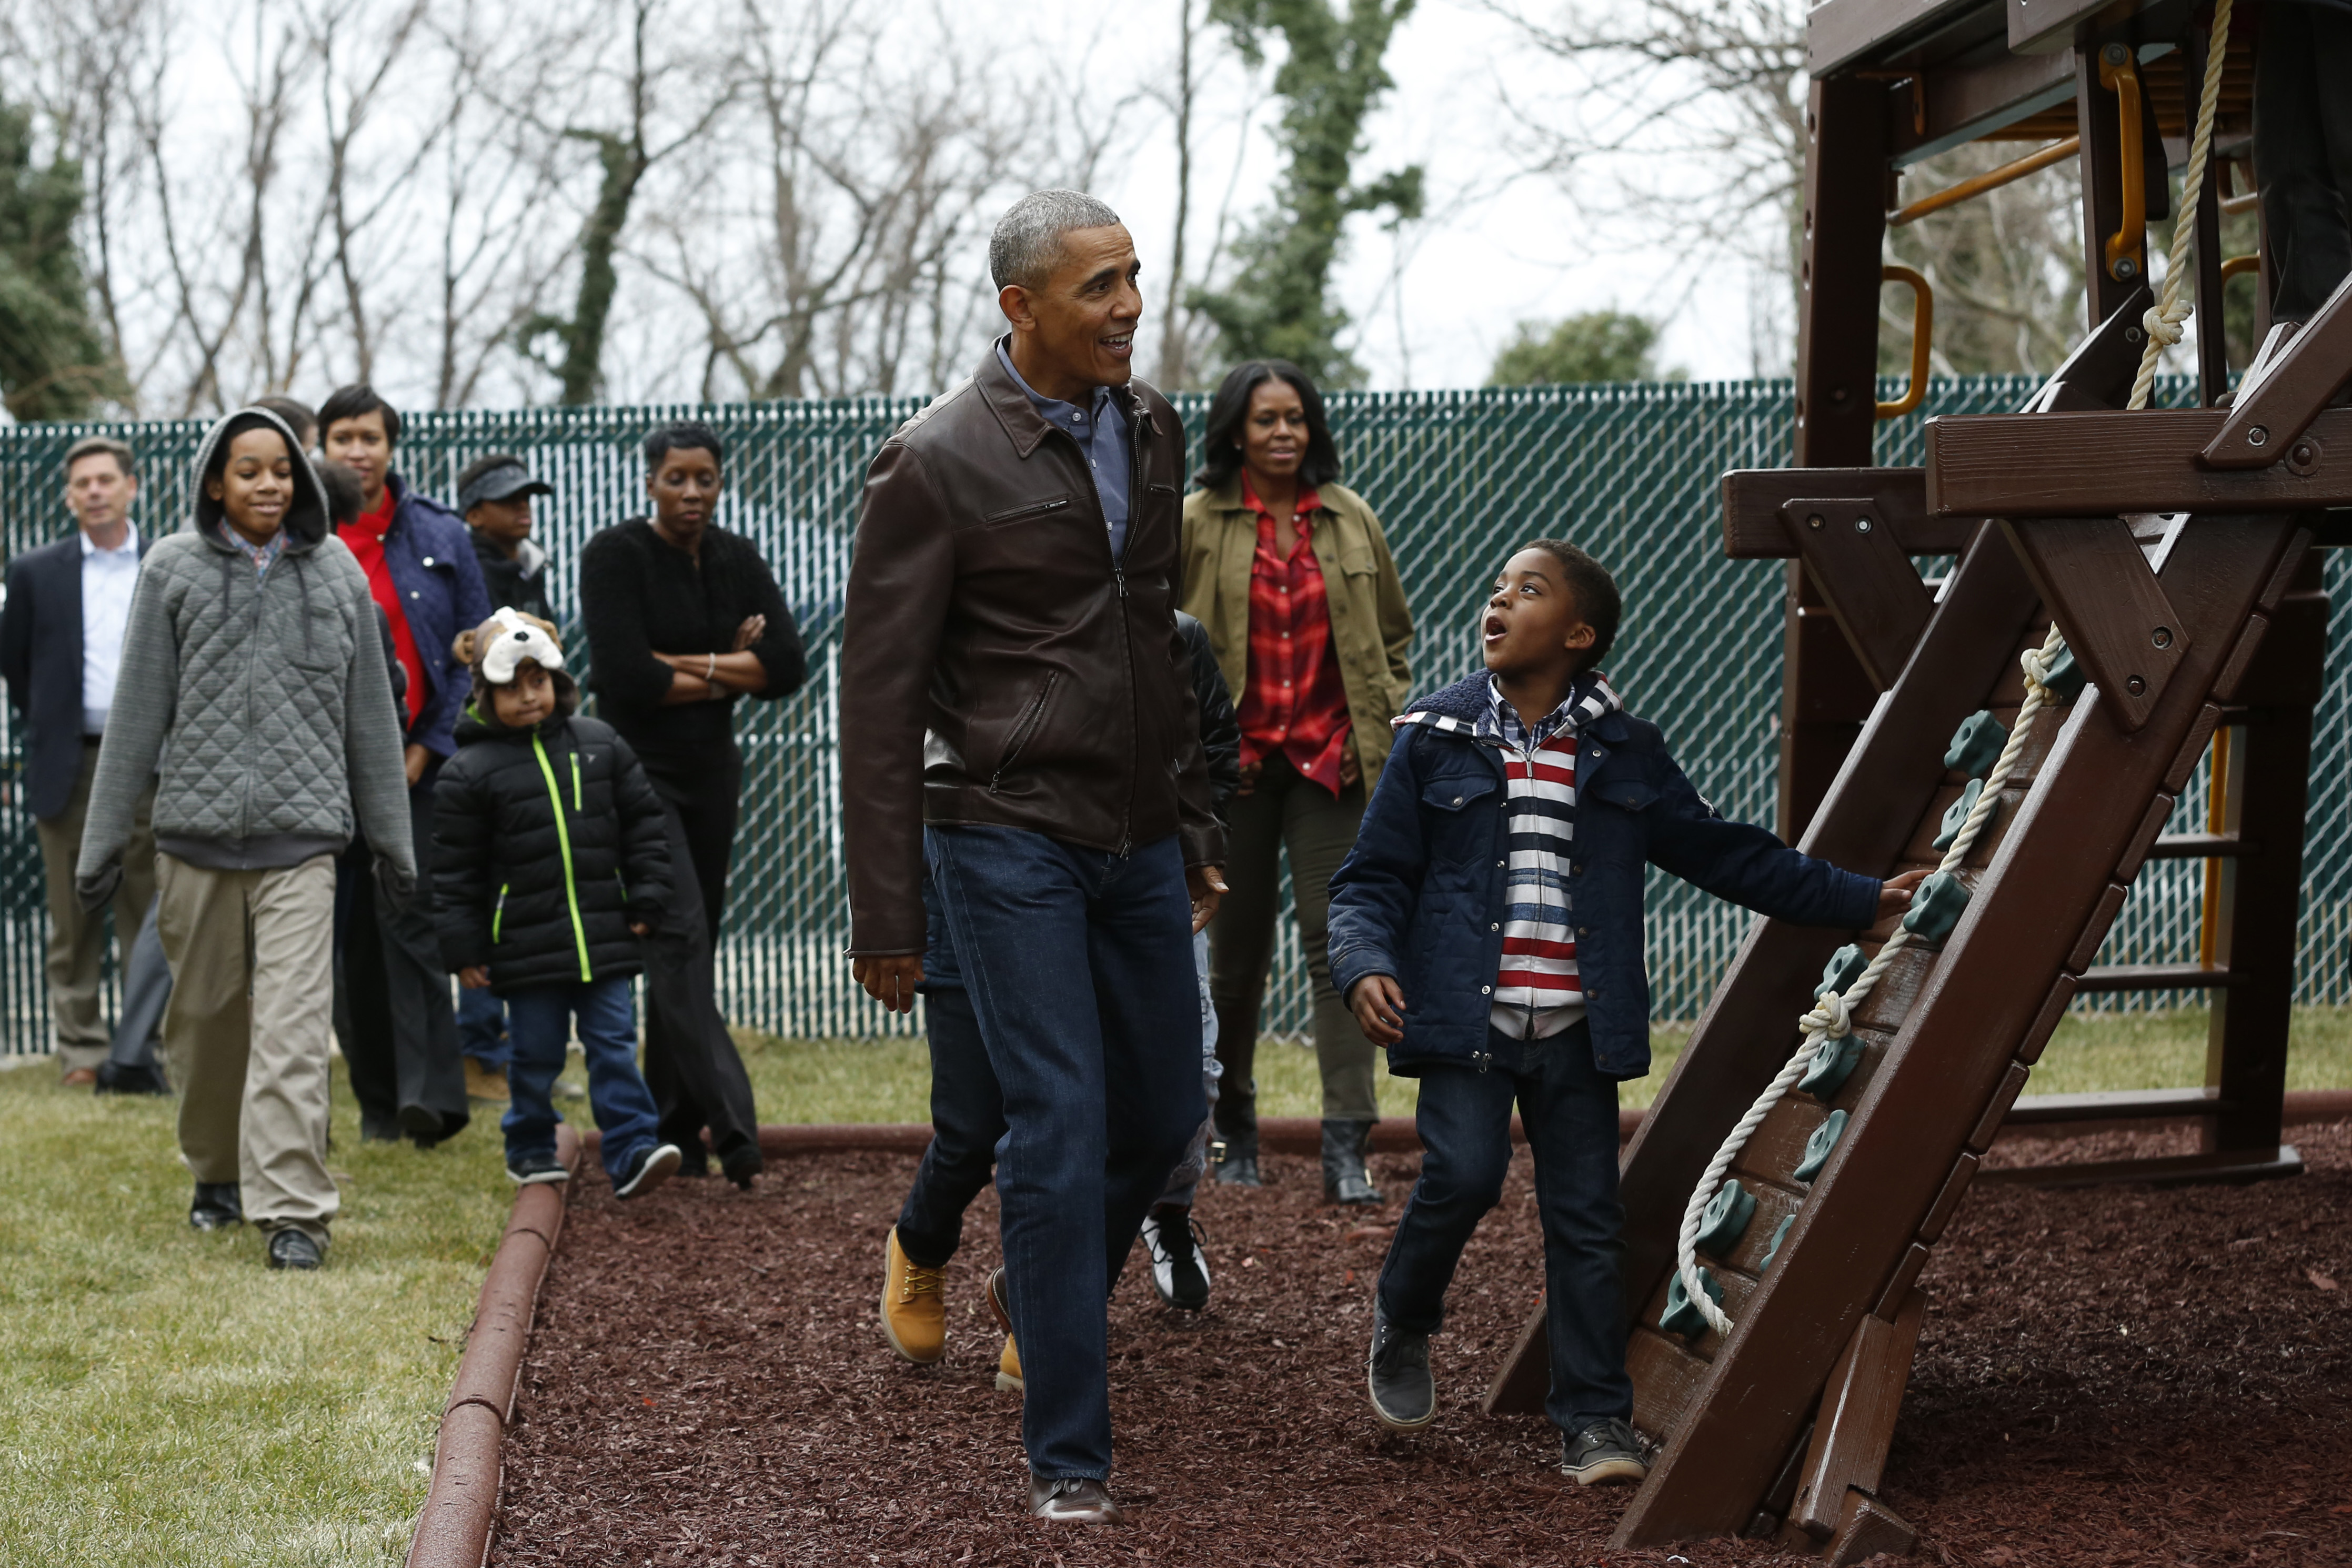 US President Barack Obama and First Lady Michelle Obama play with children on a swing donated by the first family at the Jobs Have Priority Shelter in Washington, DC on January 16, 2017. / AFP / YURI GRIPAS (Photo credit should read YURI GRIPAS/AFP/Getty Images)